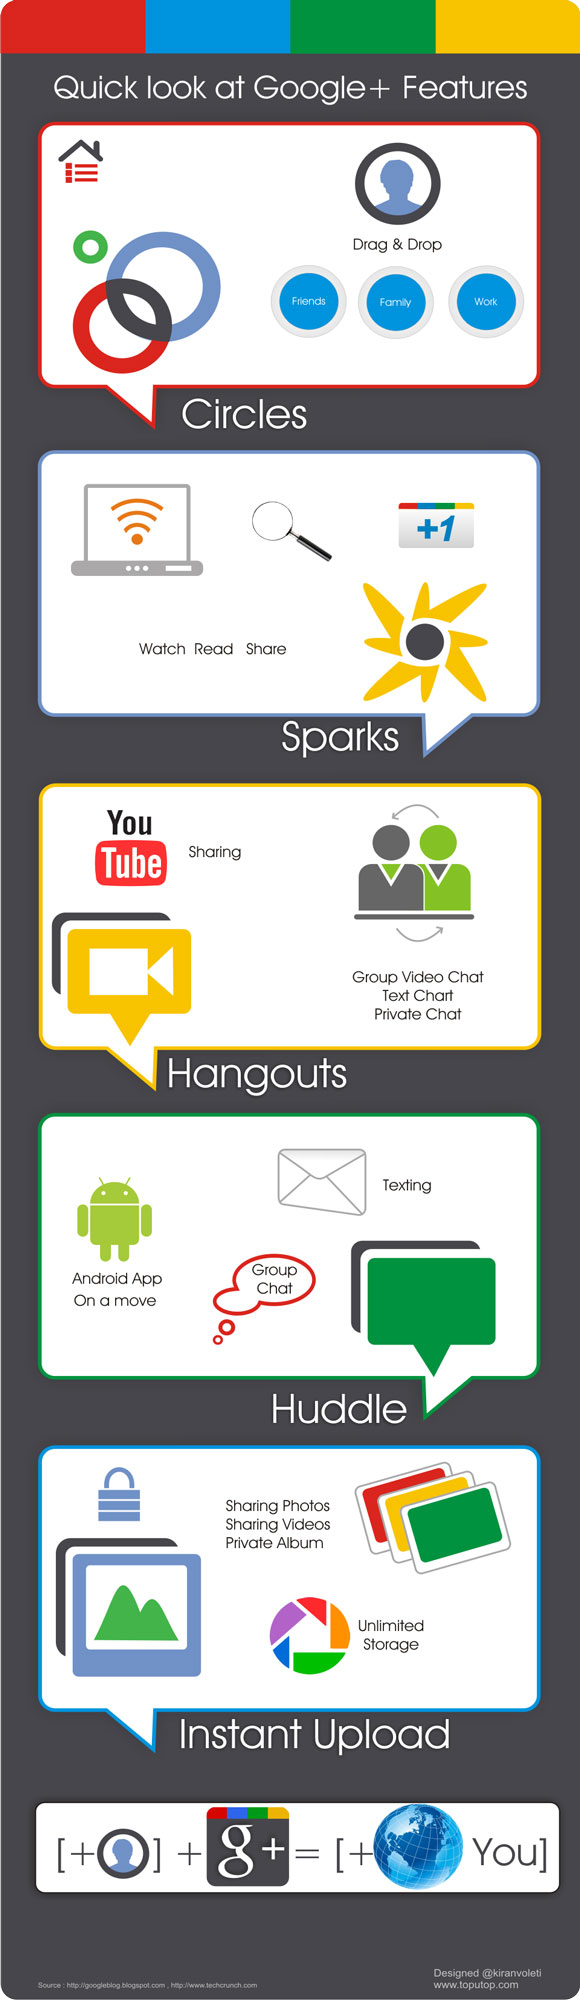 Quick Look at Google+ Features